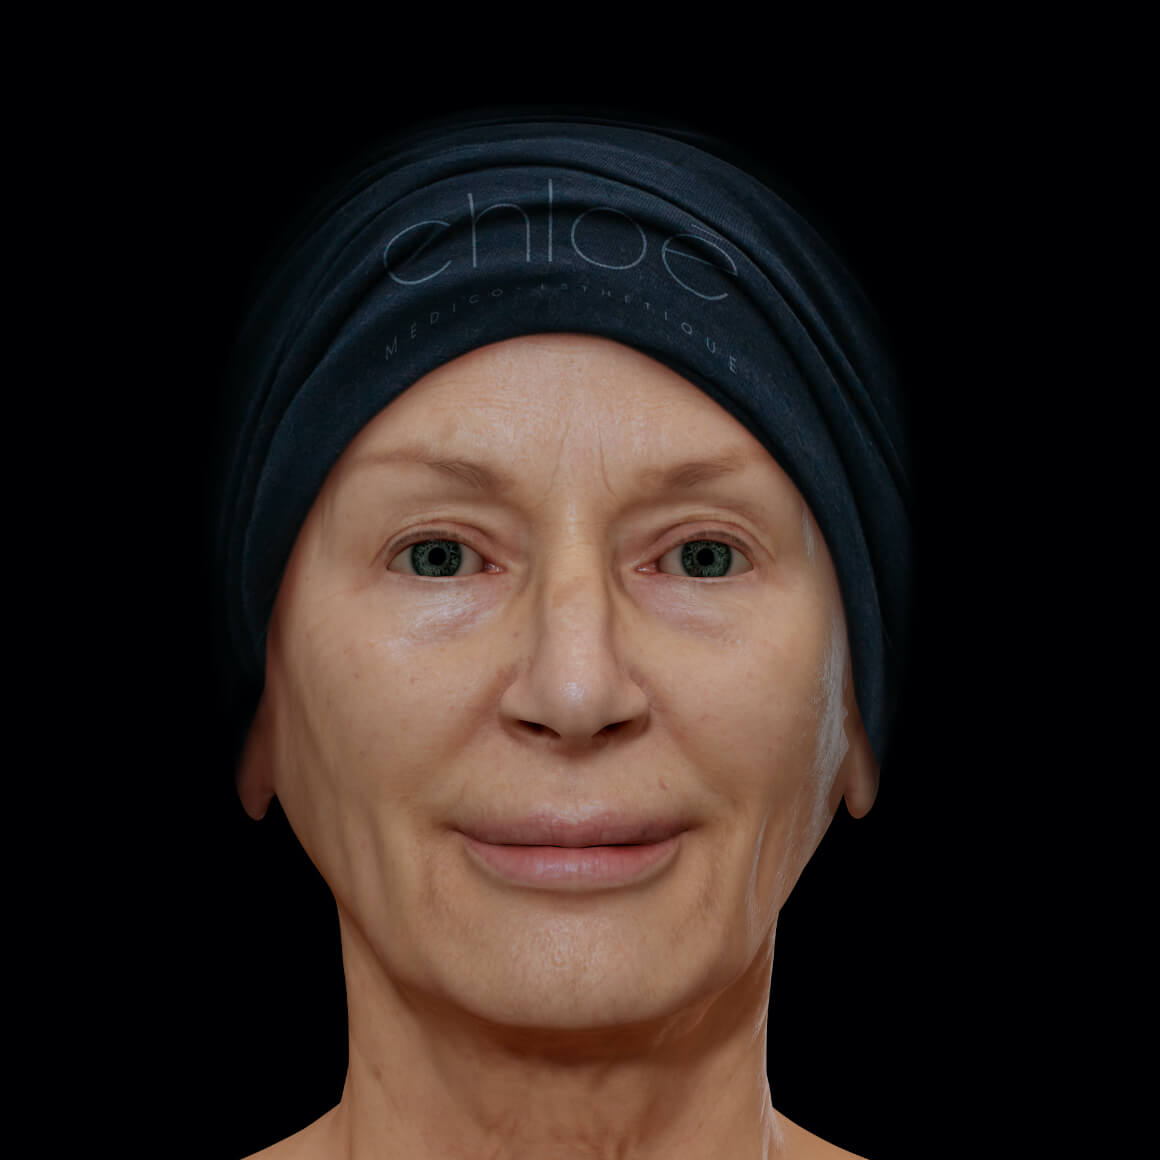 Clinique Chloé female patient facing front with facial sagging skin